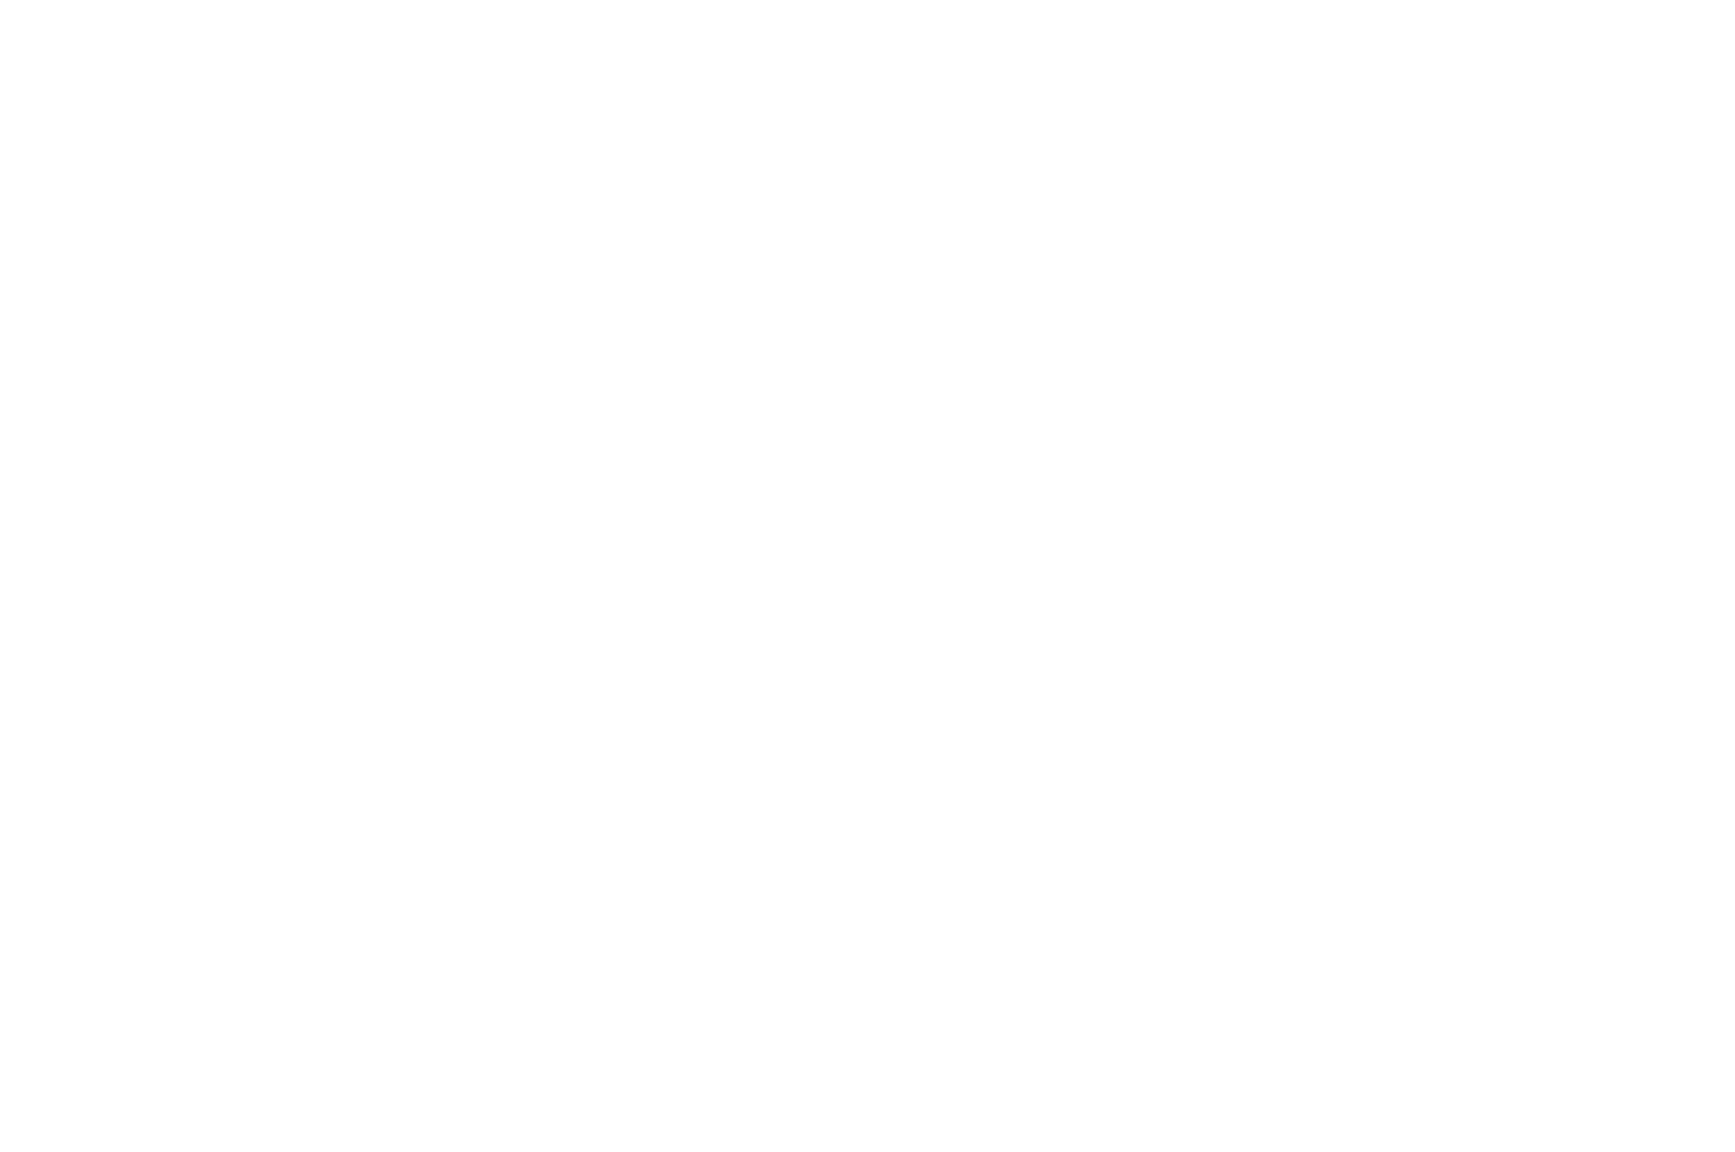 OFFICIAL SELECTION - Die Laughing Film Festival - 2020